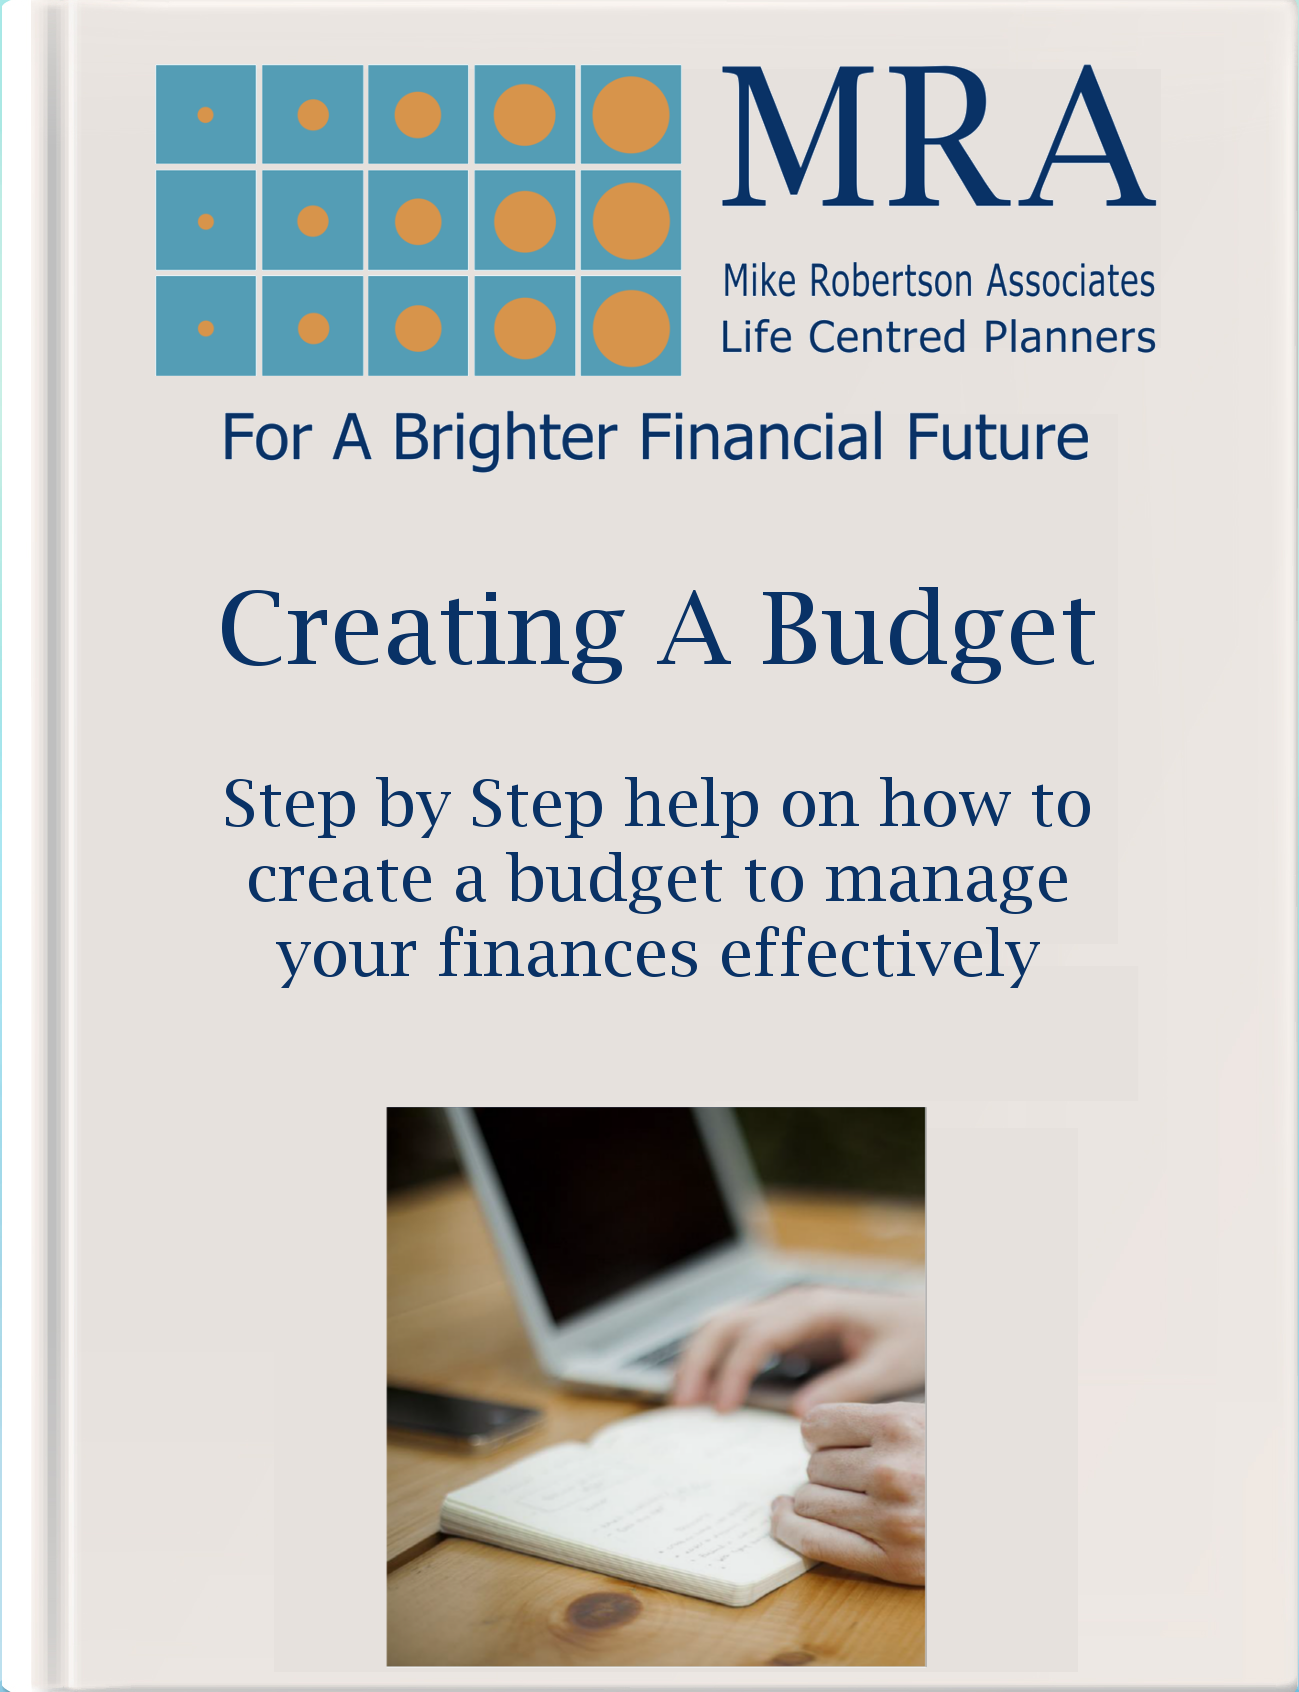 Creating a Budget Guide